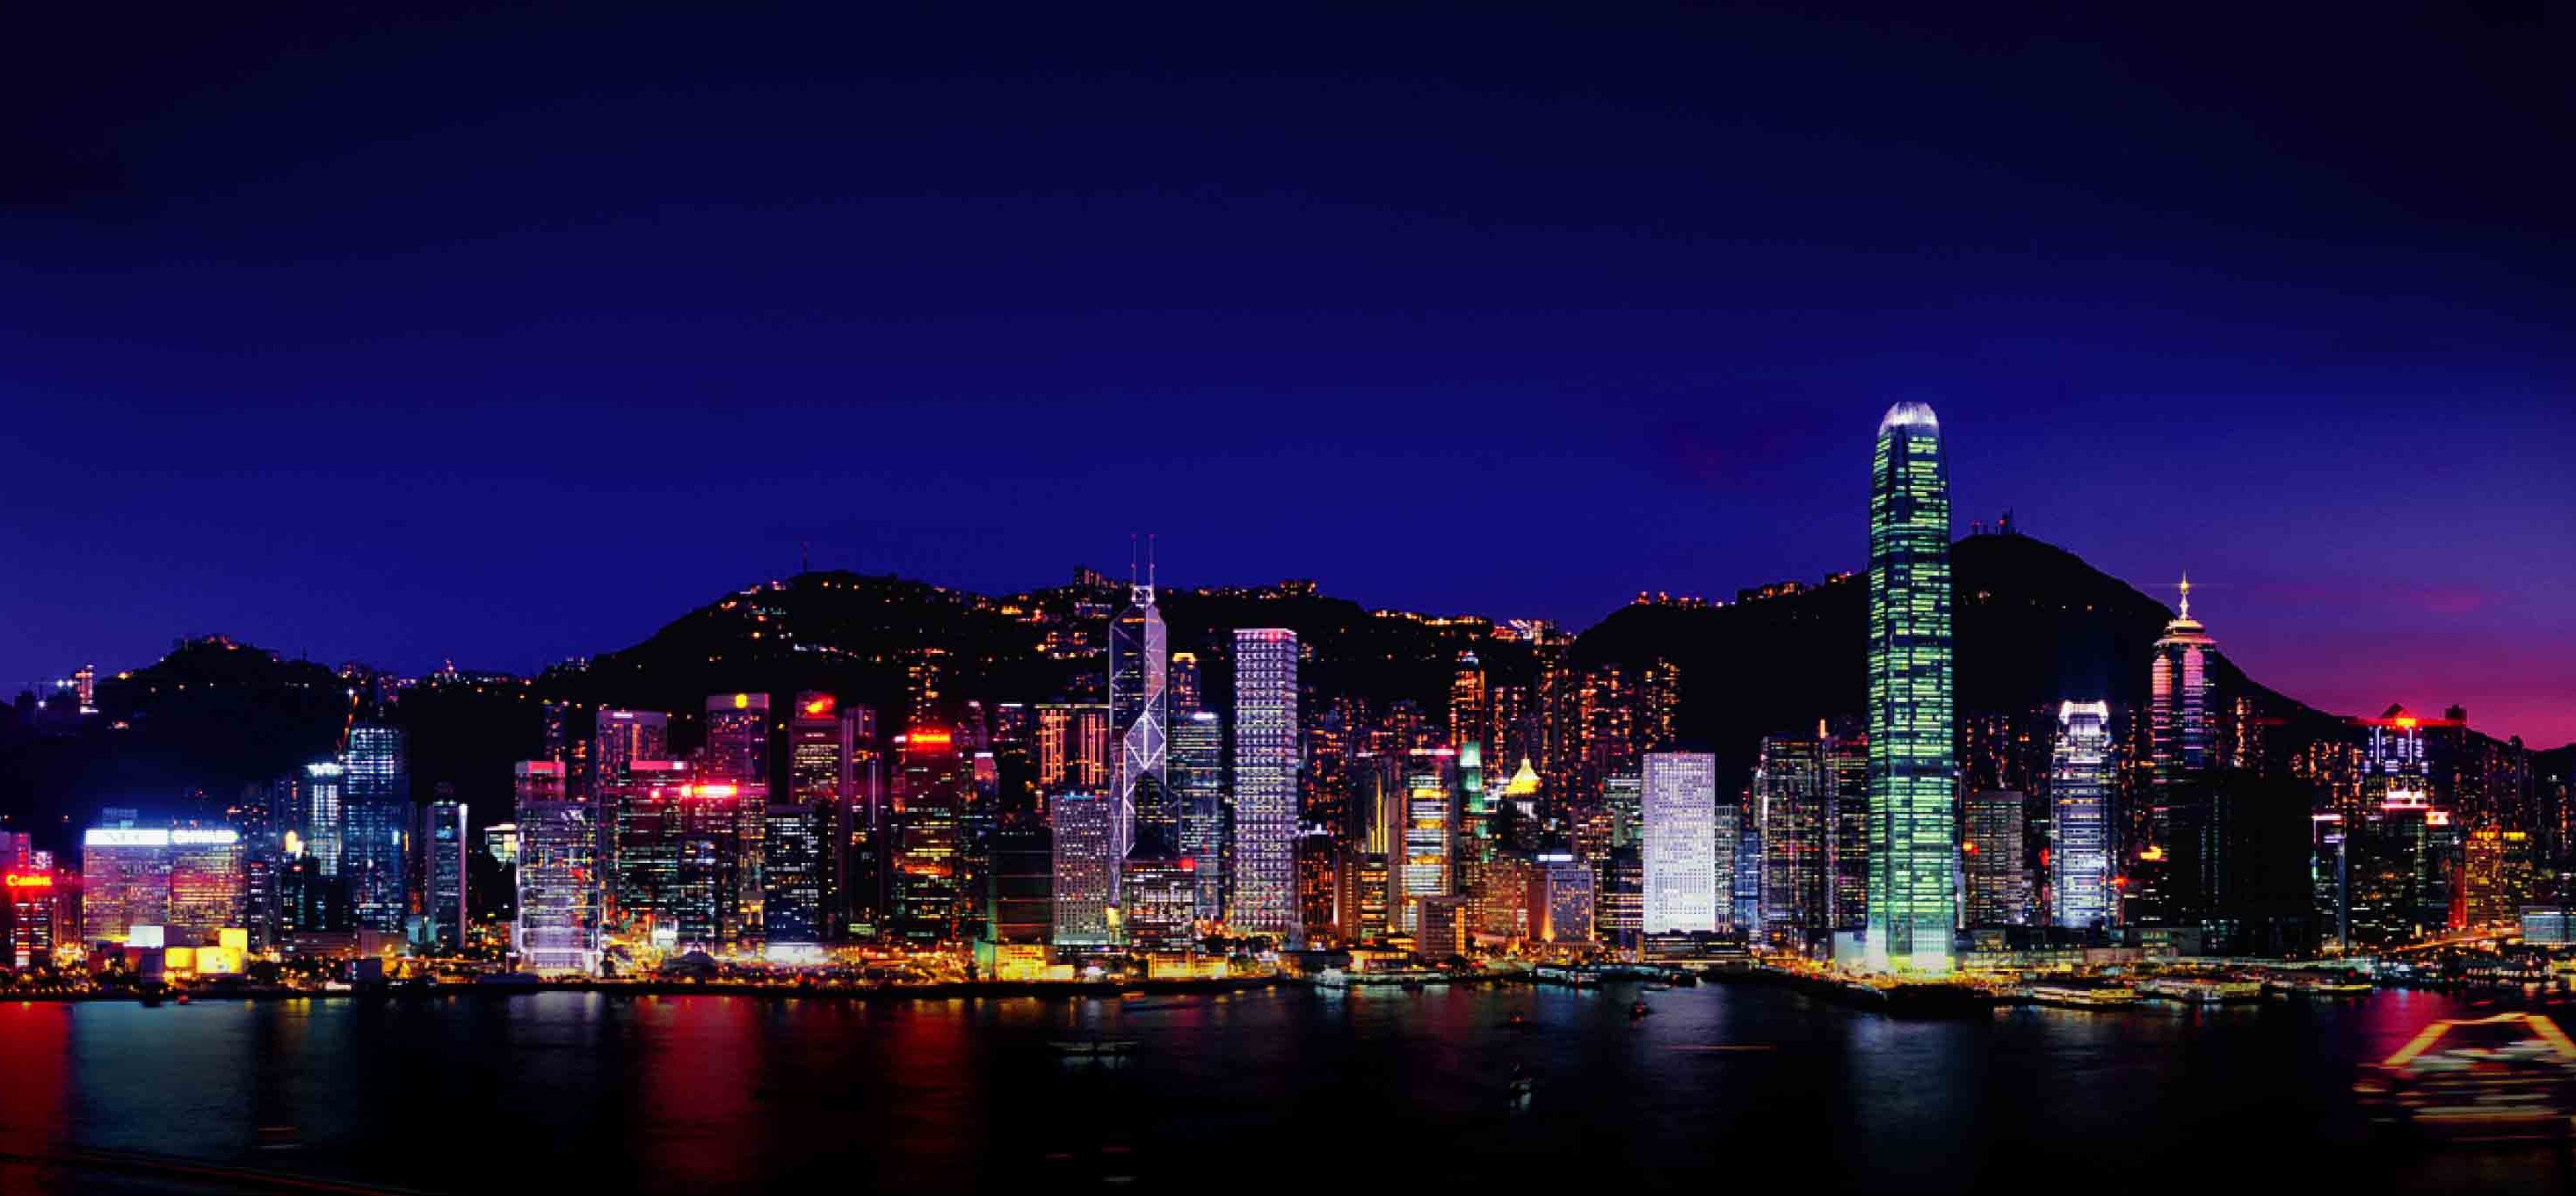 hongkong-skyline-hd-wallpaper